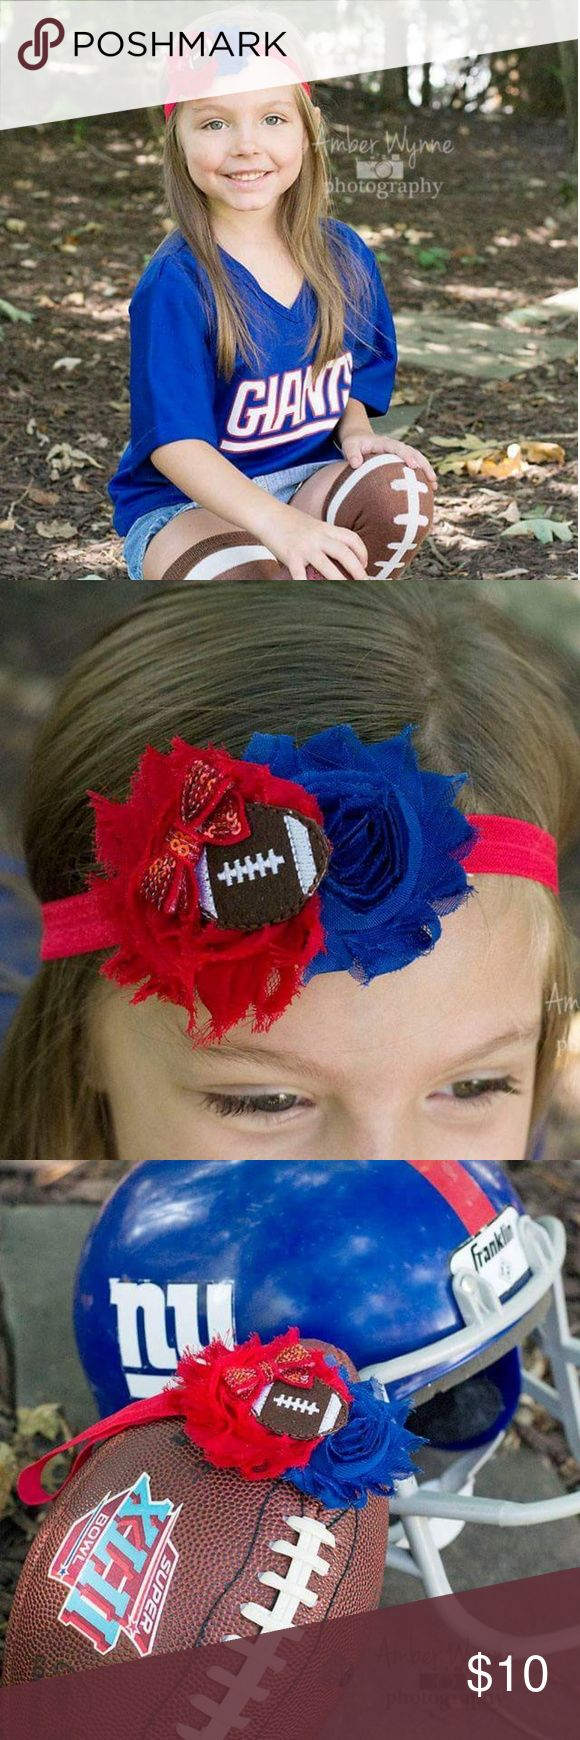 Girls Football headband. Blue and red It's football time!!!  Adorable little girls football headband in red and blue. We are Giants fans, but could be used for other teams like Patriots, Bills or big brothers school team!  Worn only once for modeling so like new!!!  Handmade from online boutique. Accessories